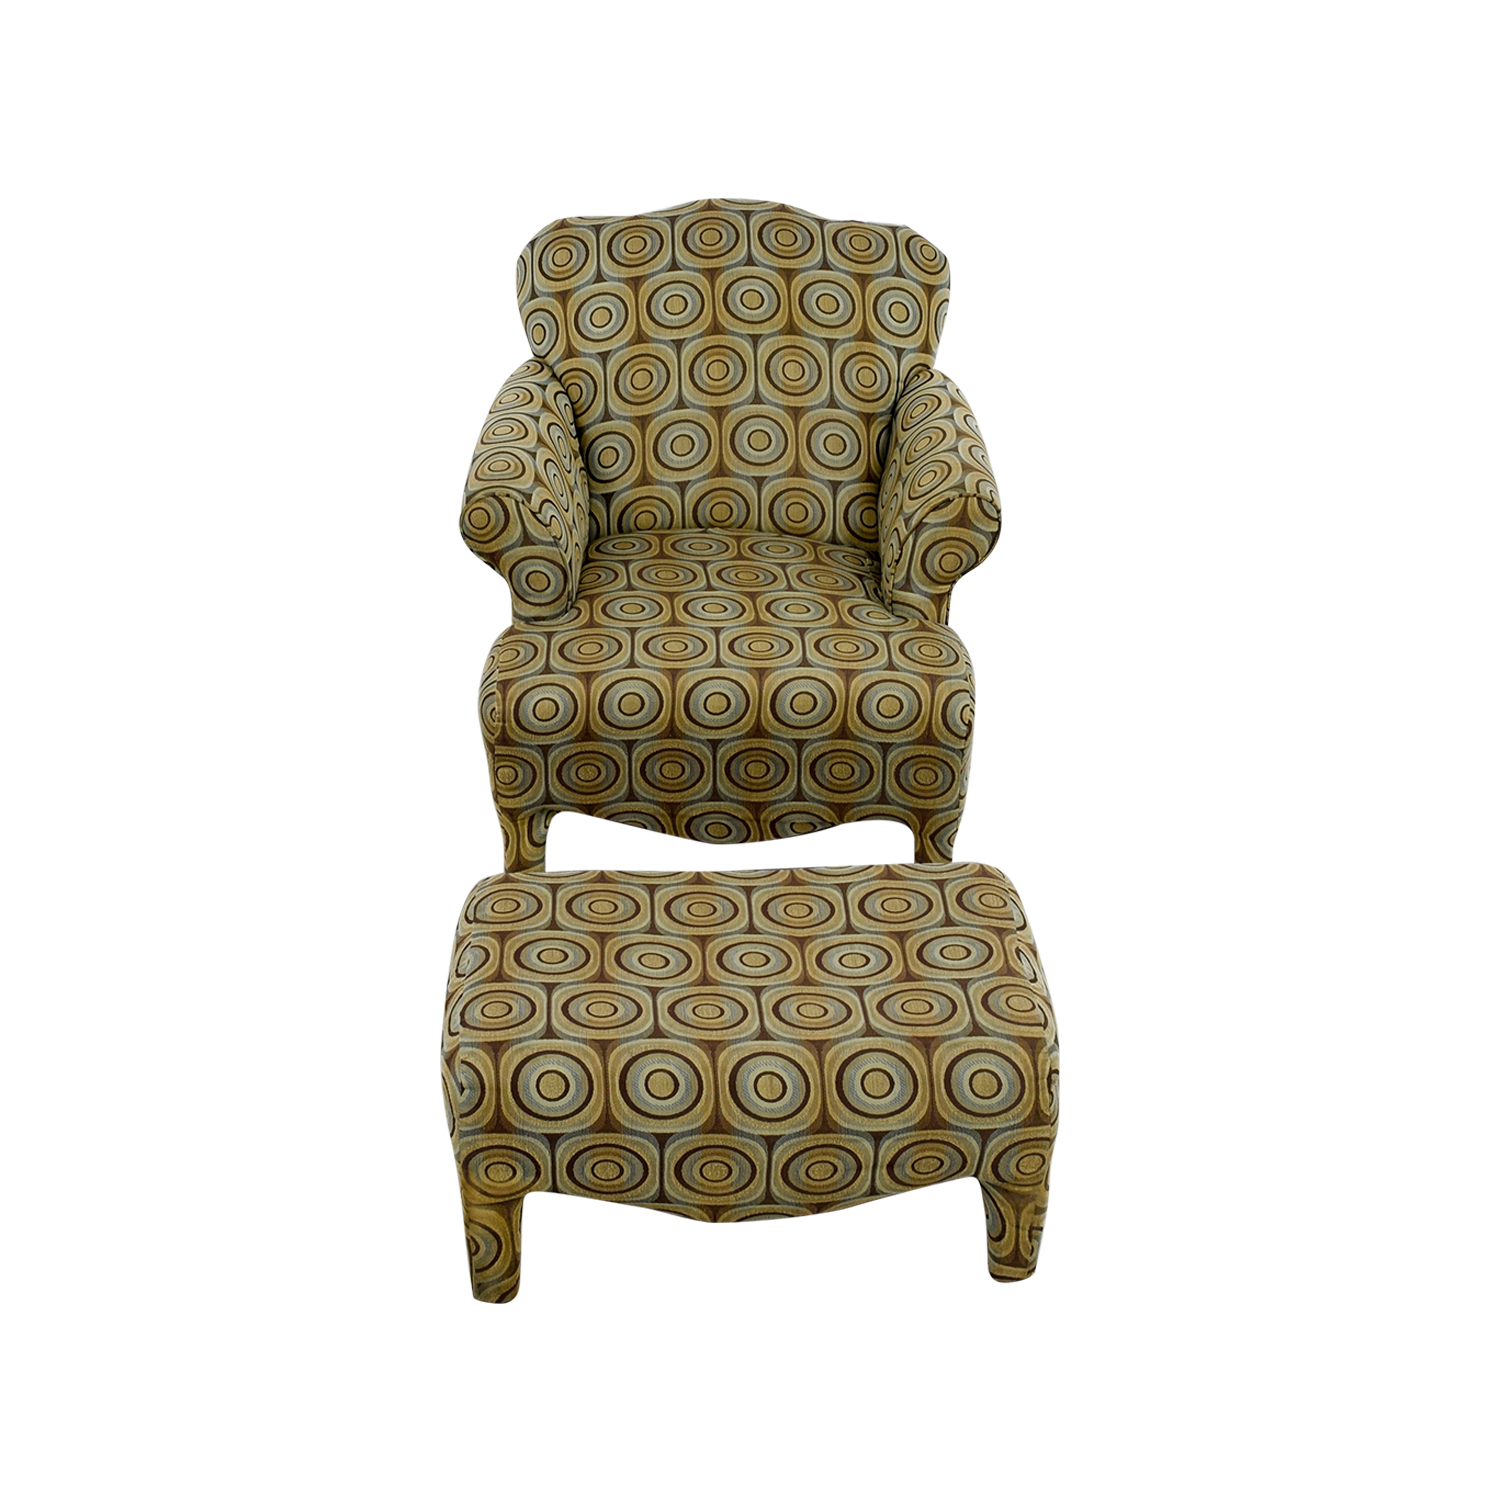 Bobs Furniture Chair and Ottoman sale